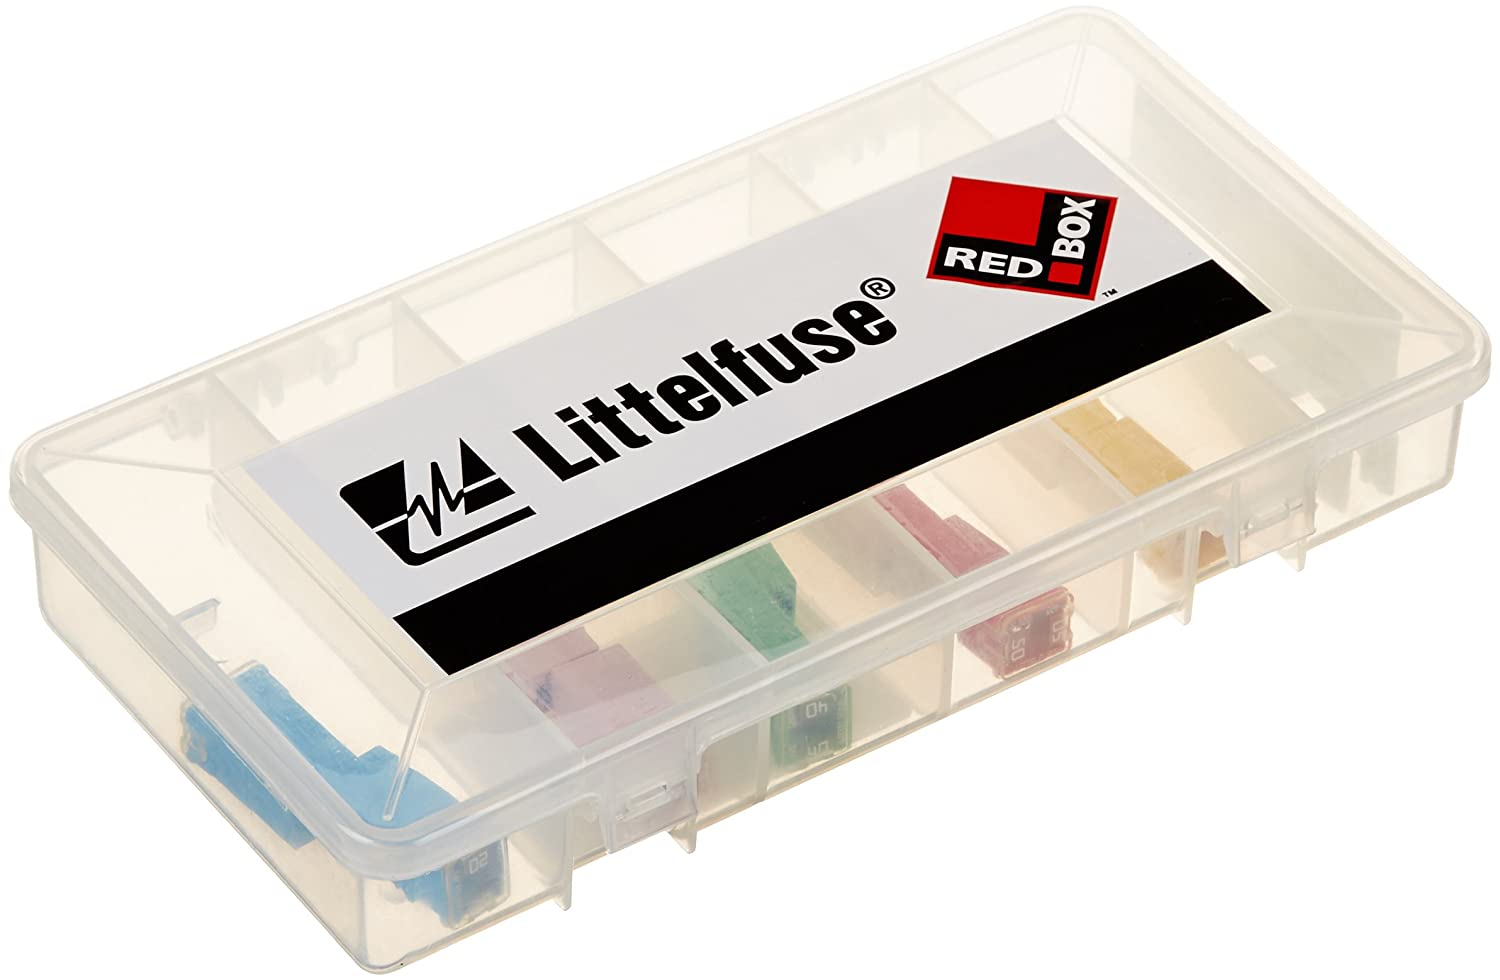 Littelfuse Rbox2 Redbox Jcase Fuse Module Automotive Aftermarket Motorcycle Box